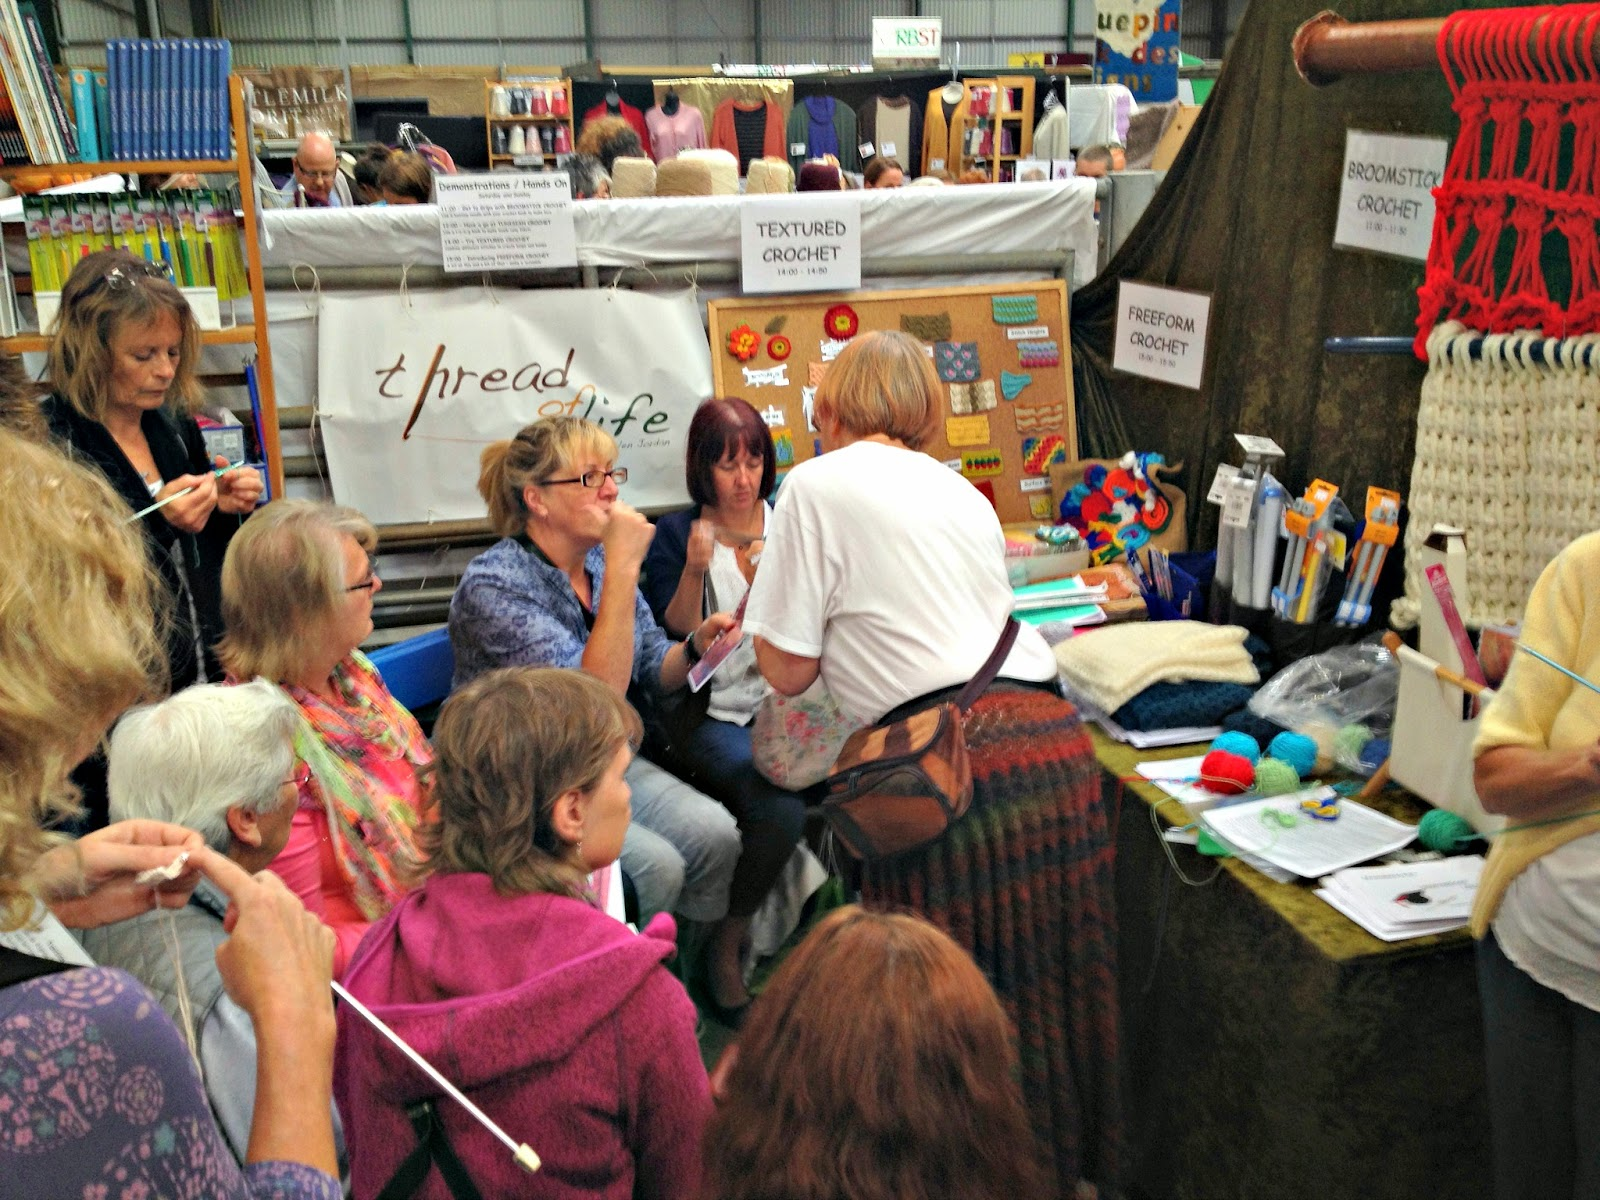 Thread of Life crochet stand at Woolfest demonstrating Tunisian Crochet